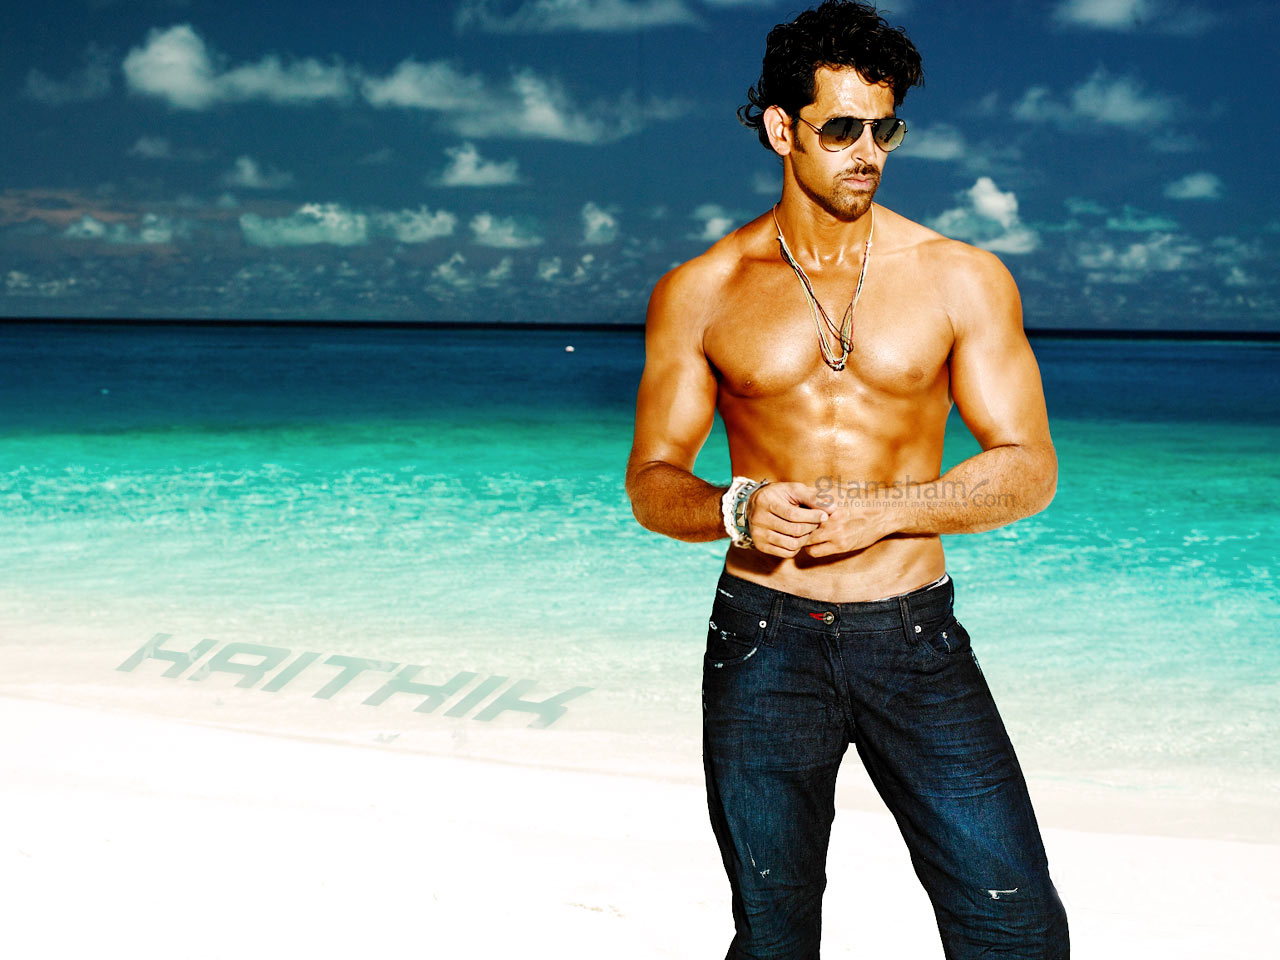 Hrithik roshan hd wallpapers hd wallpapers - Hrithik hd pic ...